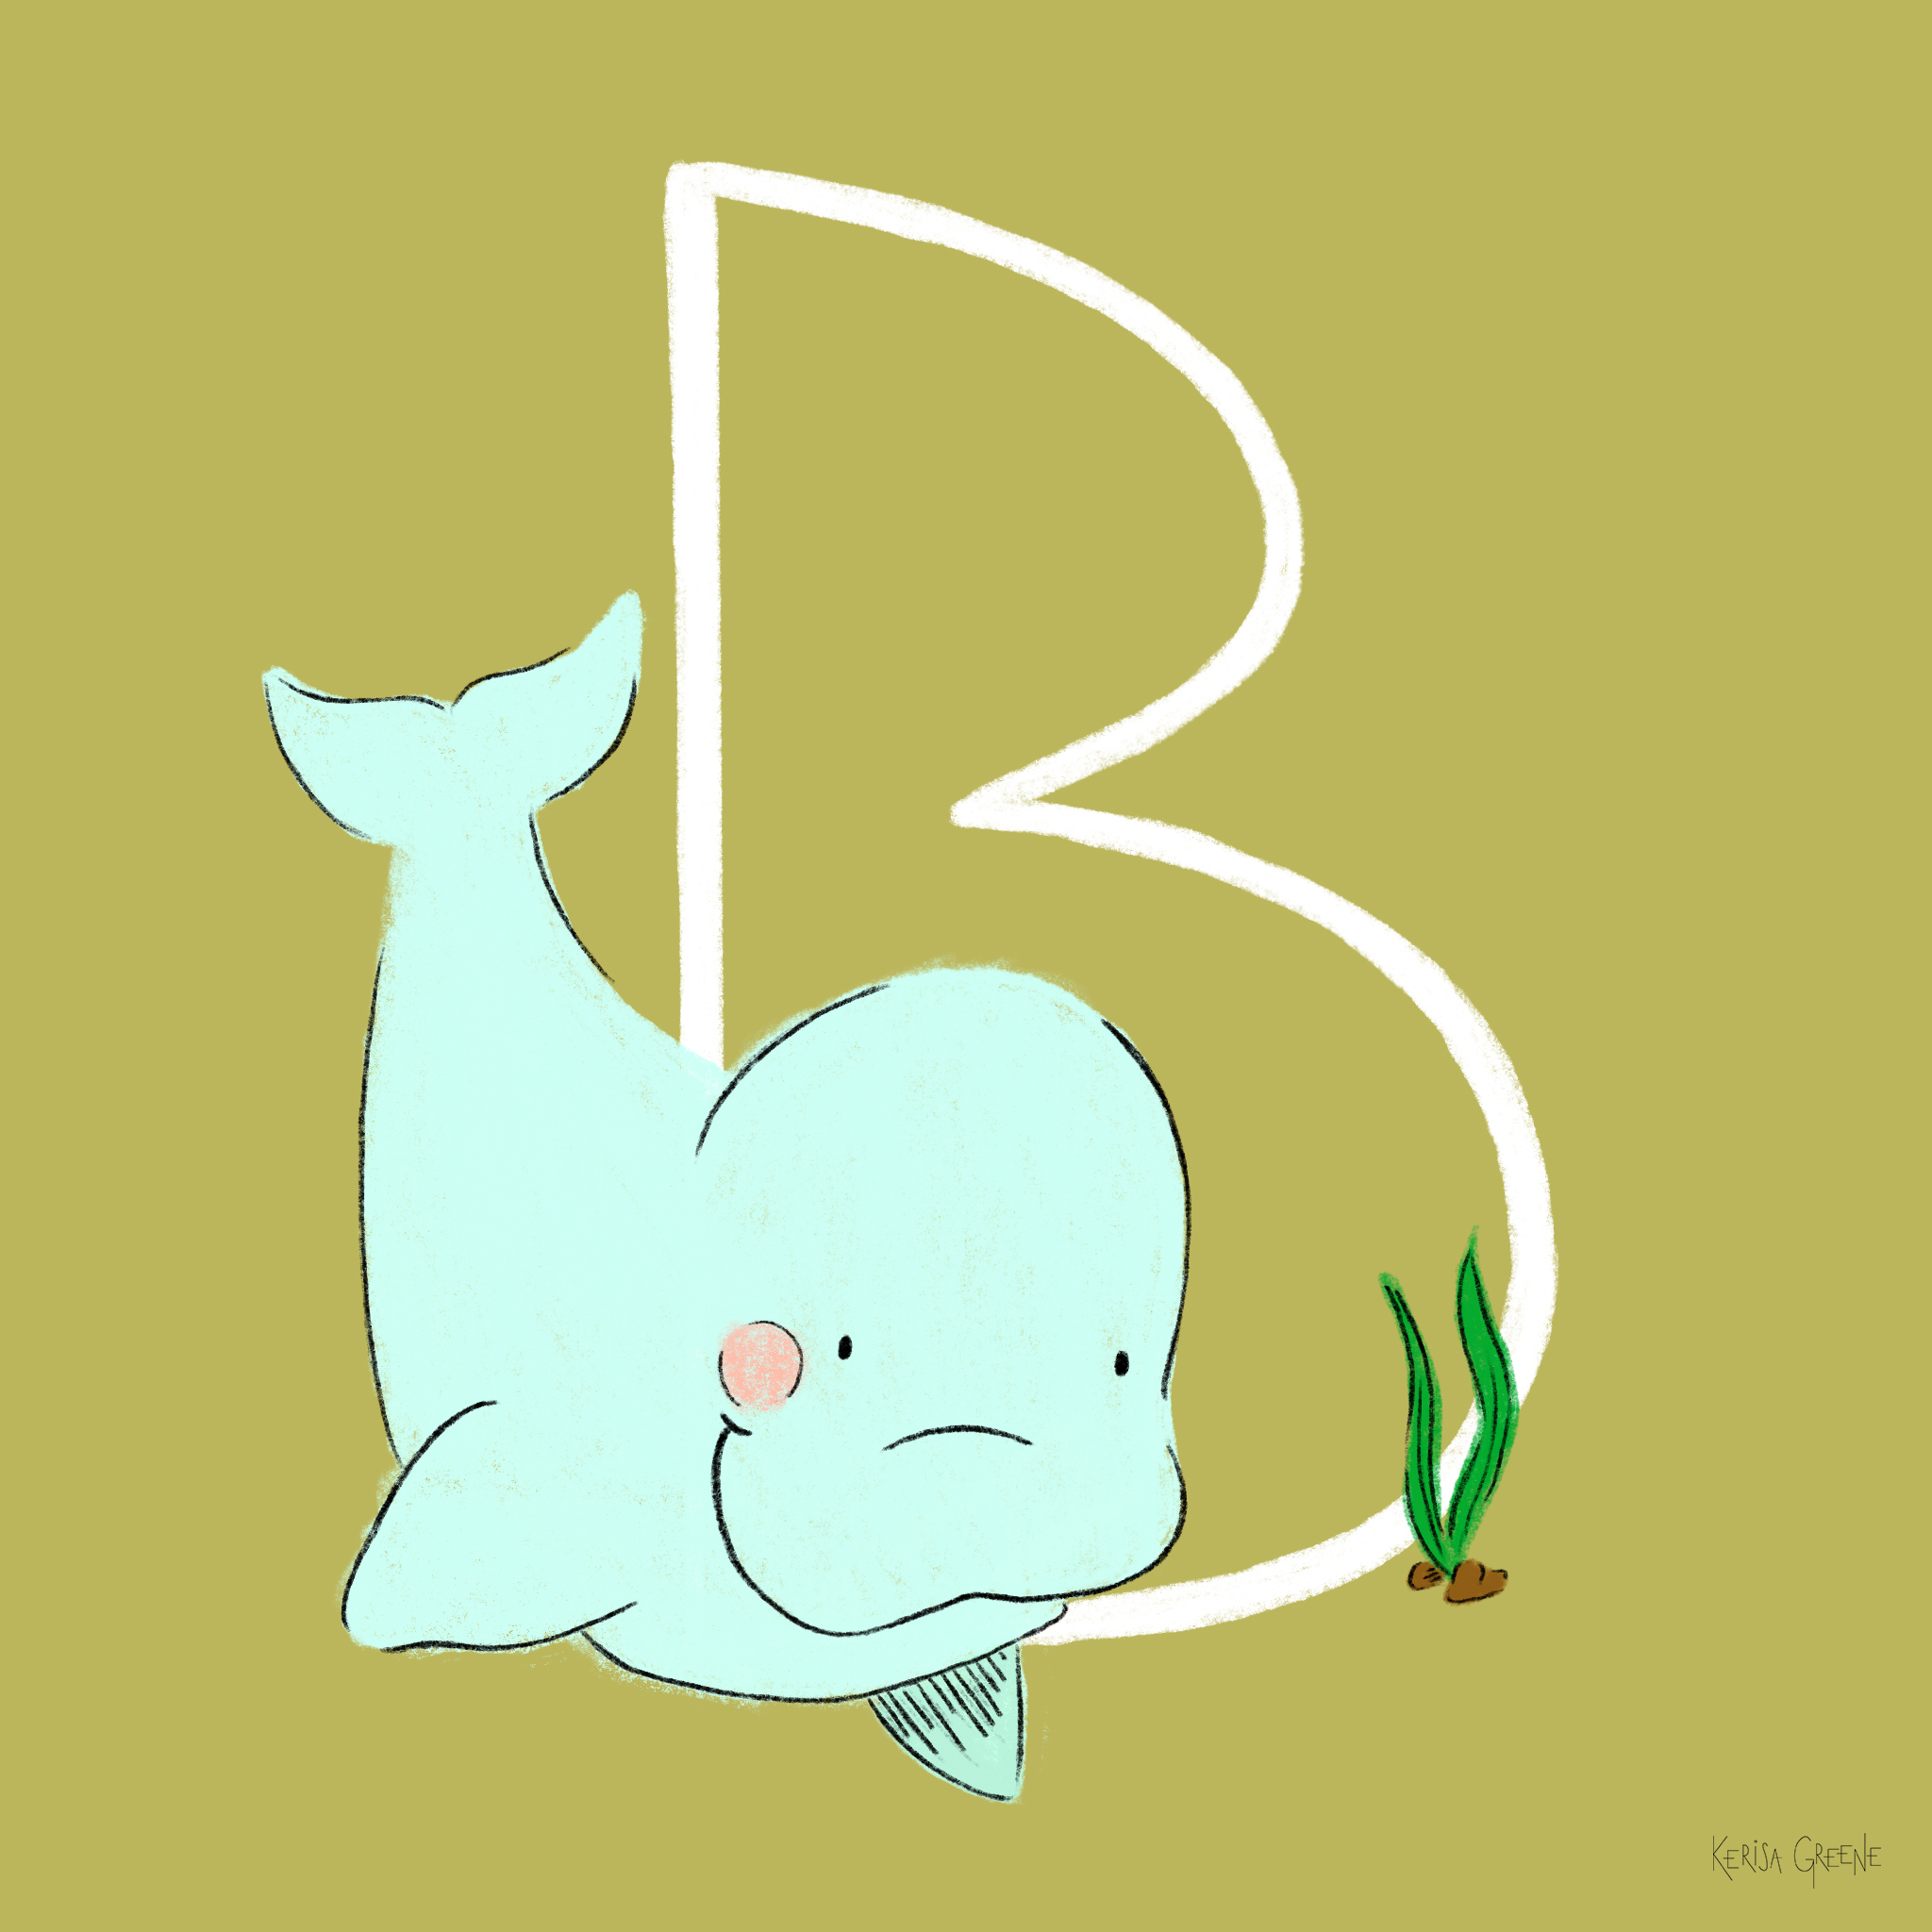 B is for Baluga Whale   These whales can swim backwards and hold their breath underwater for up to 15 minutes! ⠀